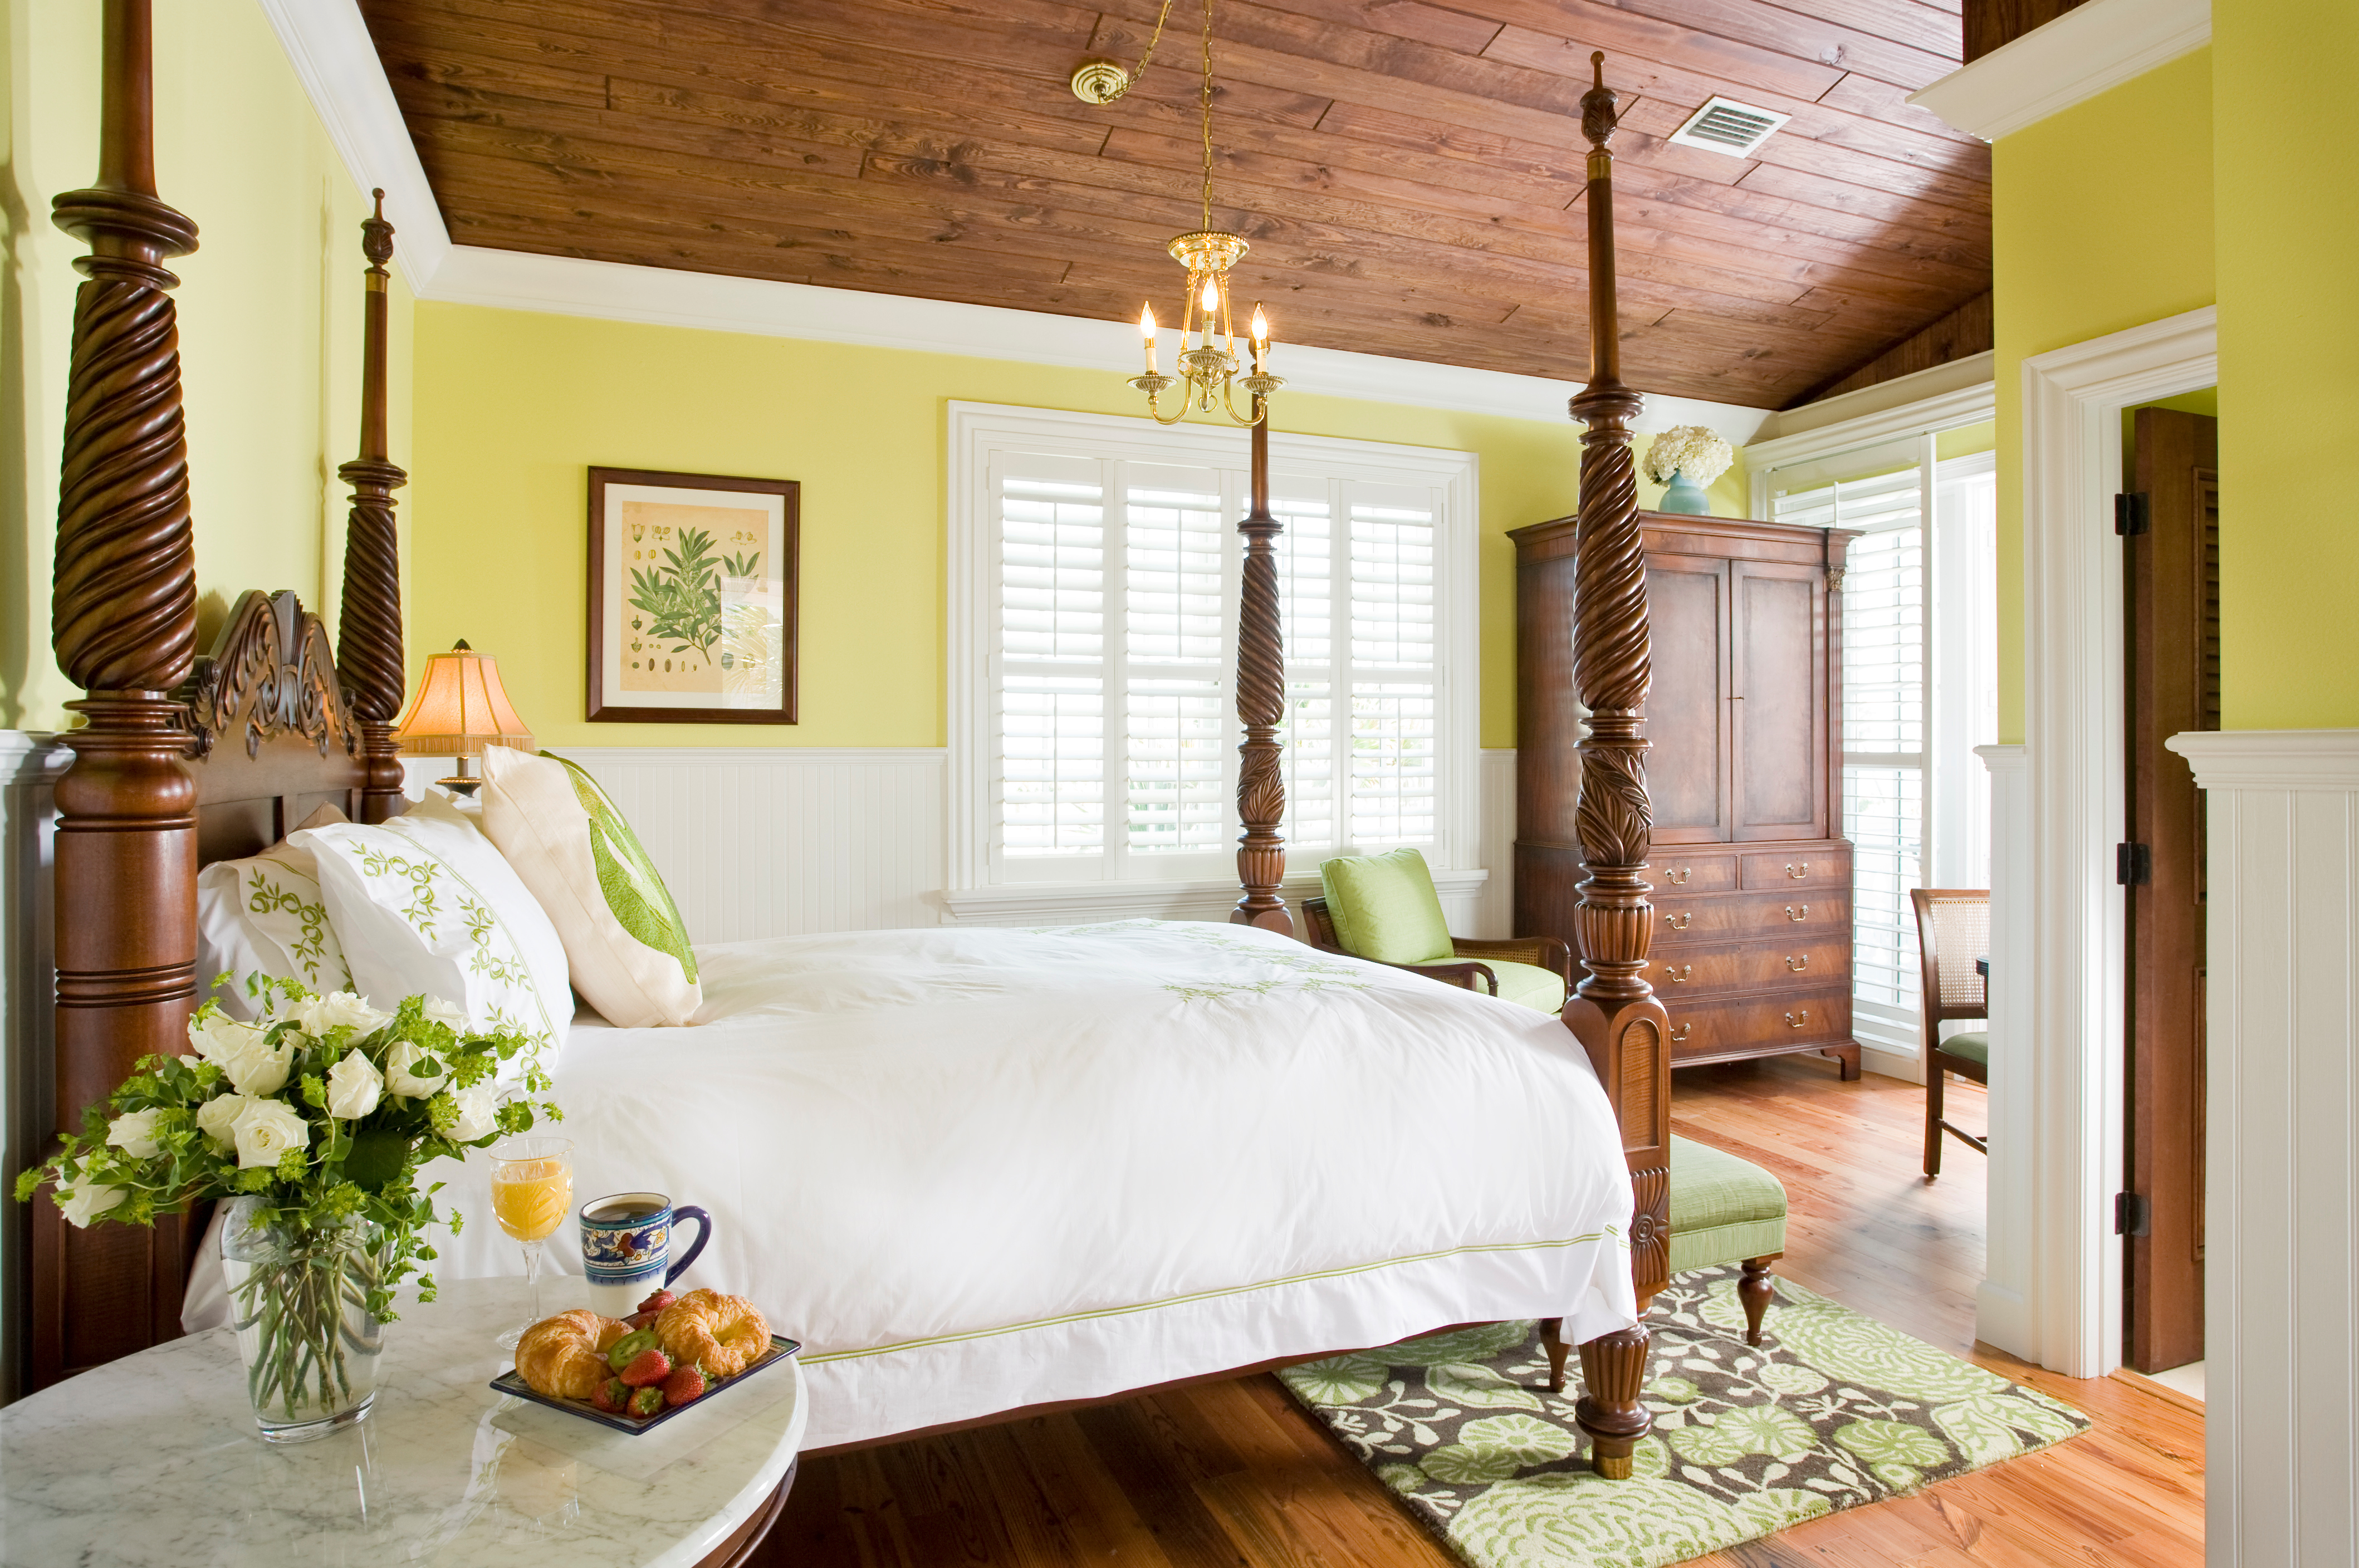 Sunny guest room at Port d'Hiver bed and breakfast in Melbourne Beach, Florida